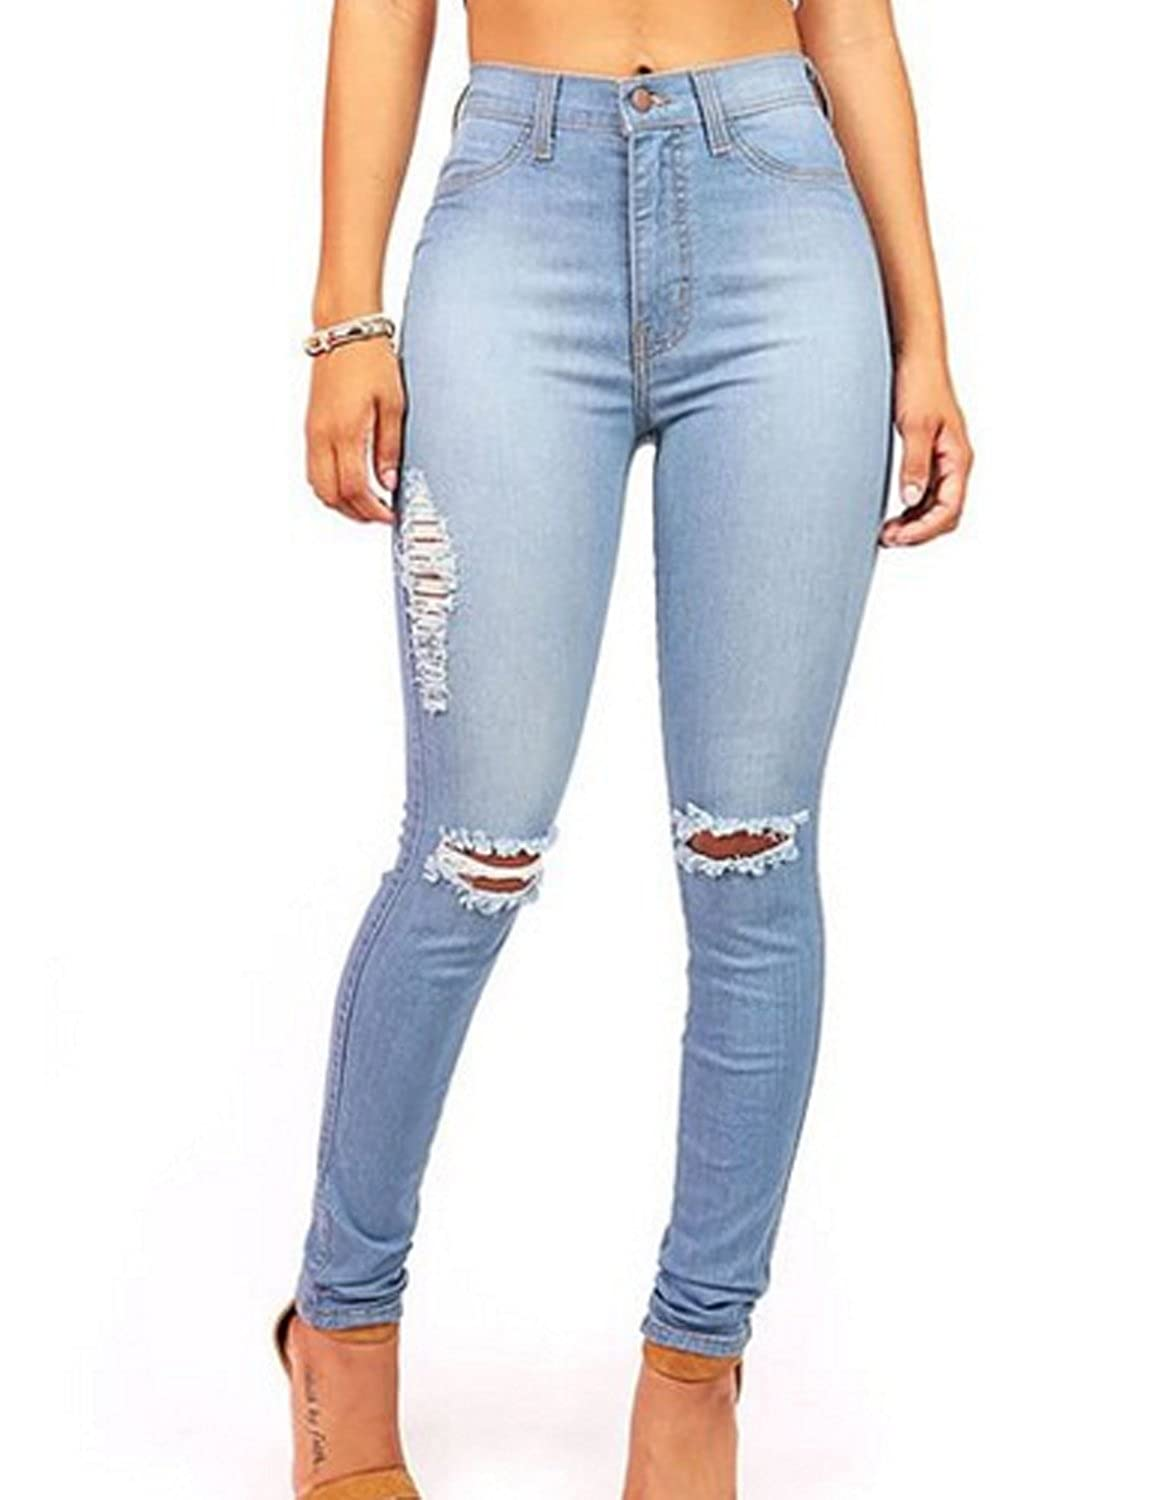 Burvogue Women Stretch Ripped Distressed Skinny Jeans Denim Pants IQ-BM3R-0BRT